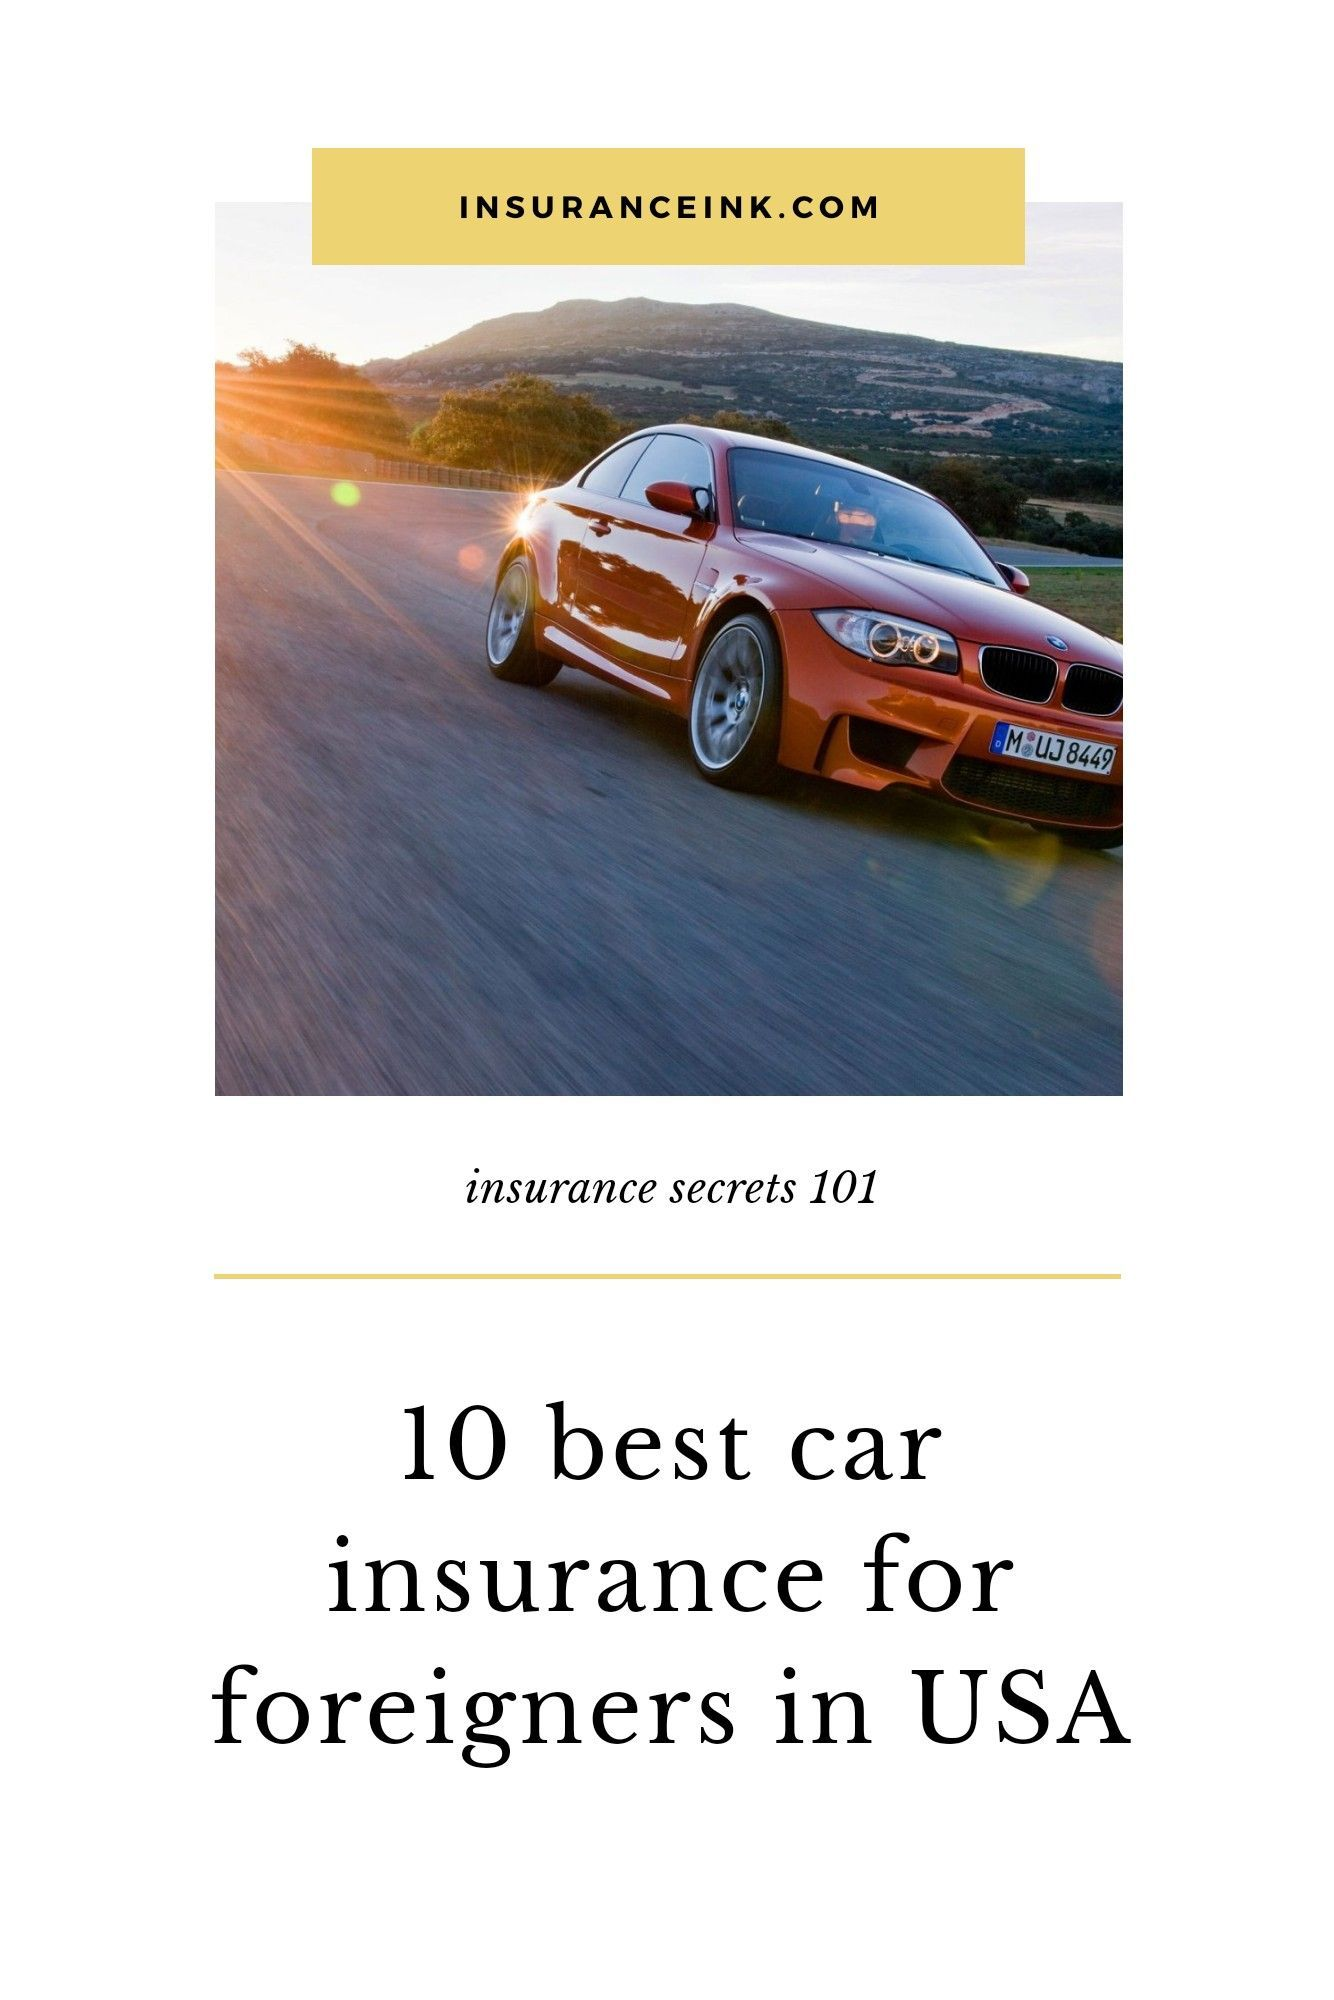 10 Best Car Insurance For Foreigners In Usa Car Insurance Insurance Car Insurance Companies Aut In 2020 With Images Best Car Insurance Car Insurance Best Auto Insurance Companies